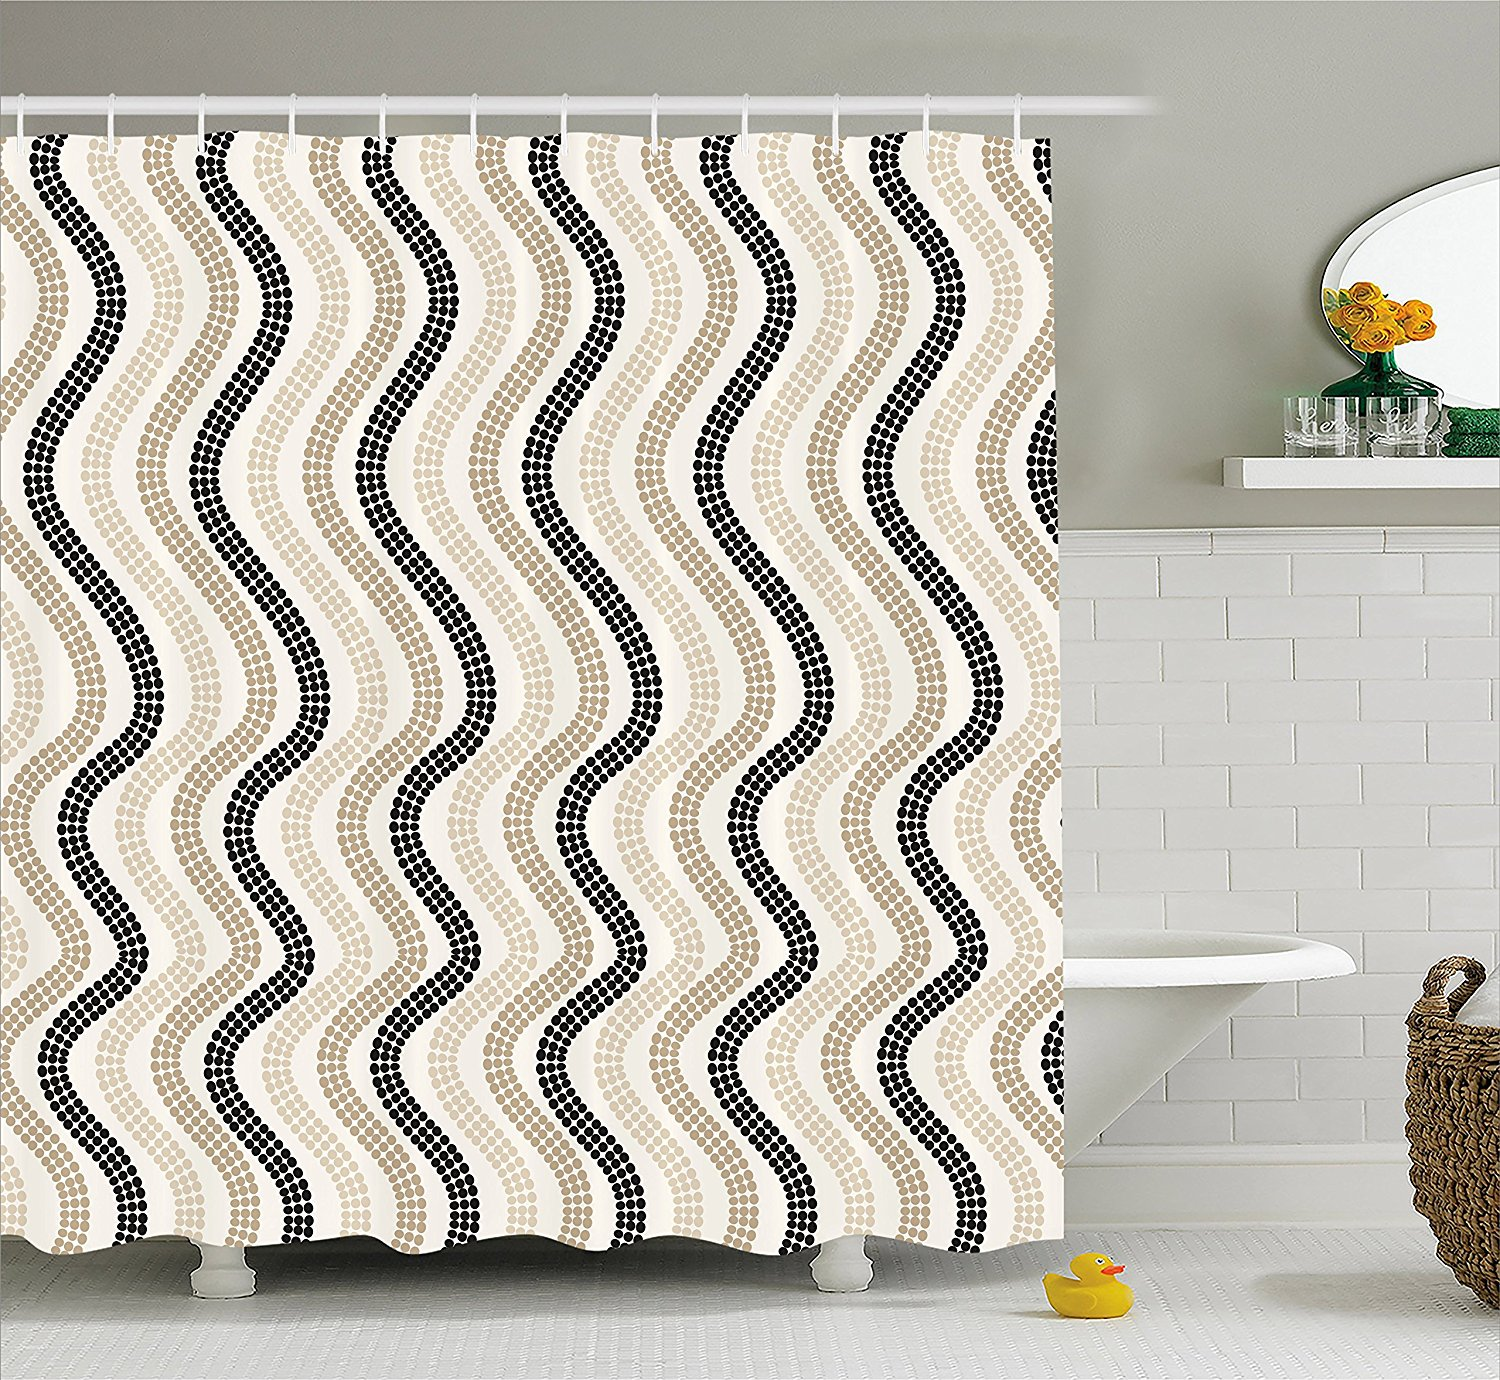 colorful abstract shower curtain fabric